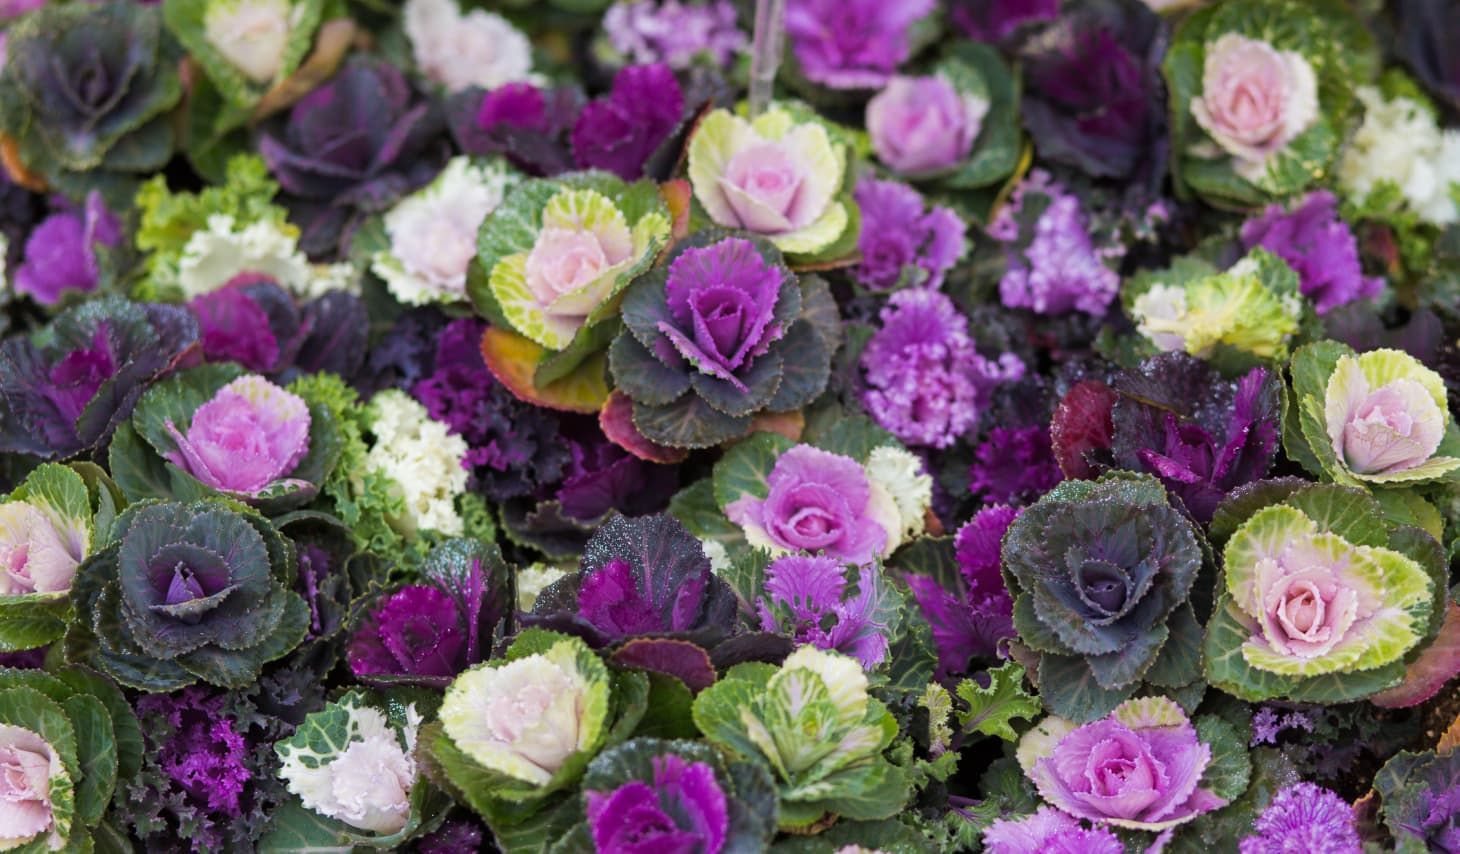 How To Grow And Care For Ornamental Kale And Cabbage Ornamental Kale Flowering Kale Ornamental Cabbage